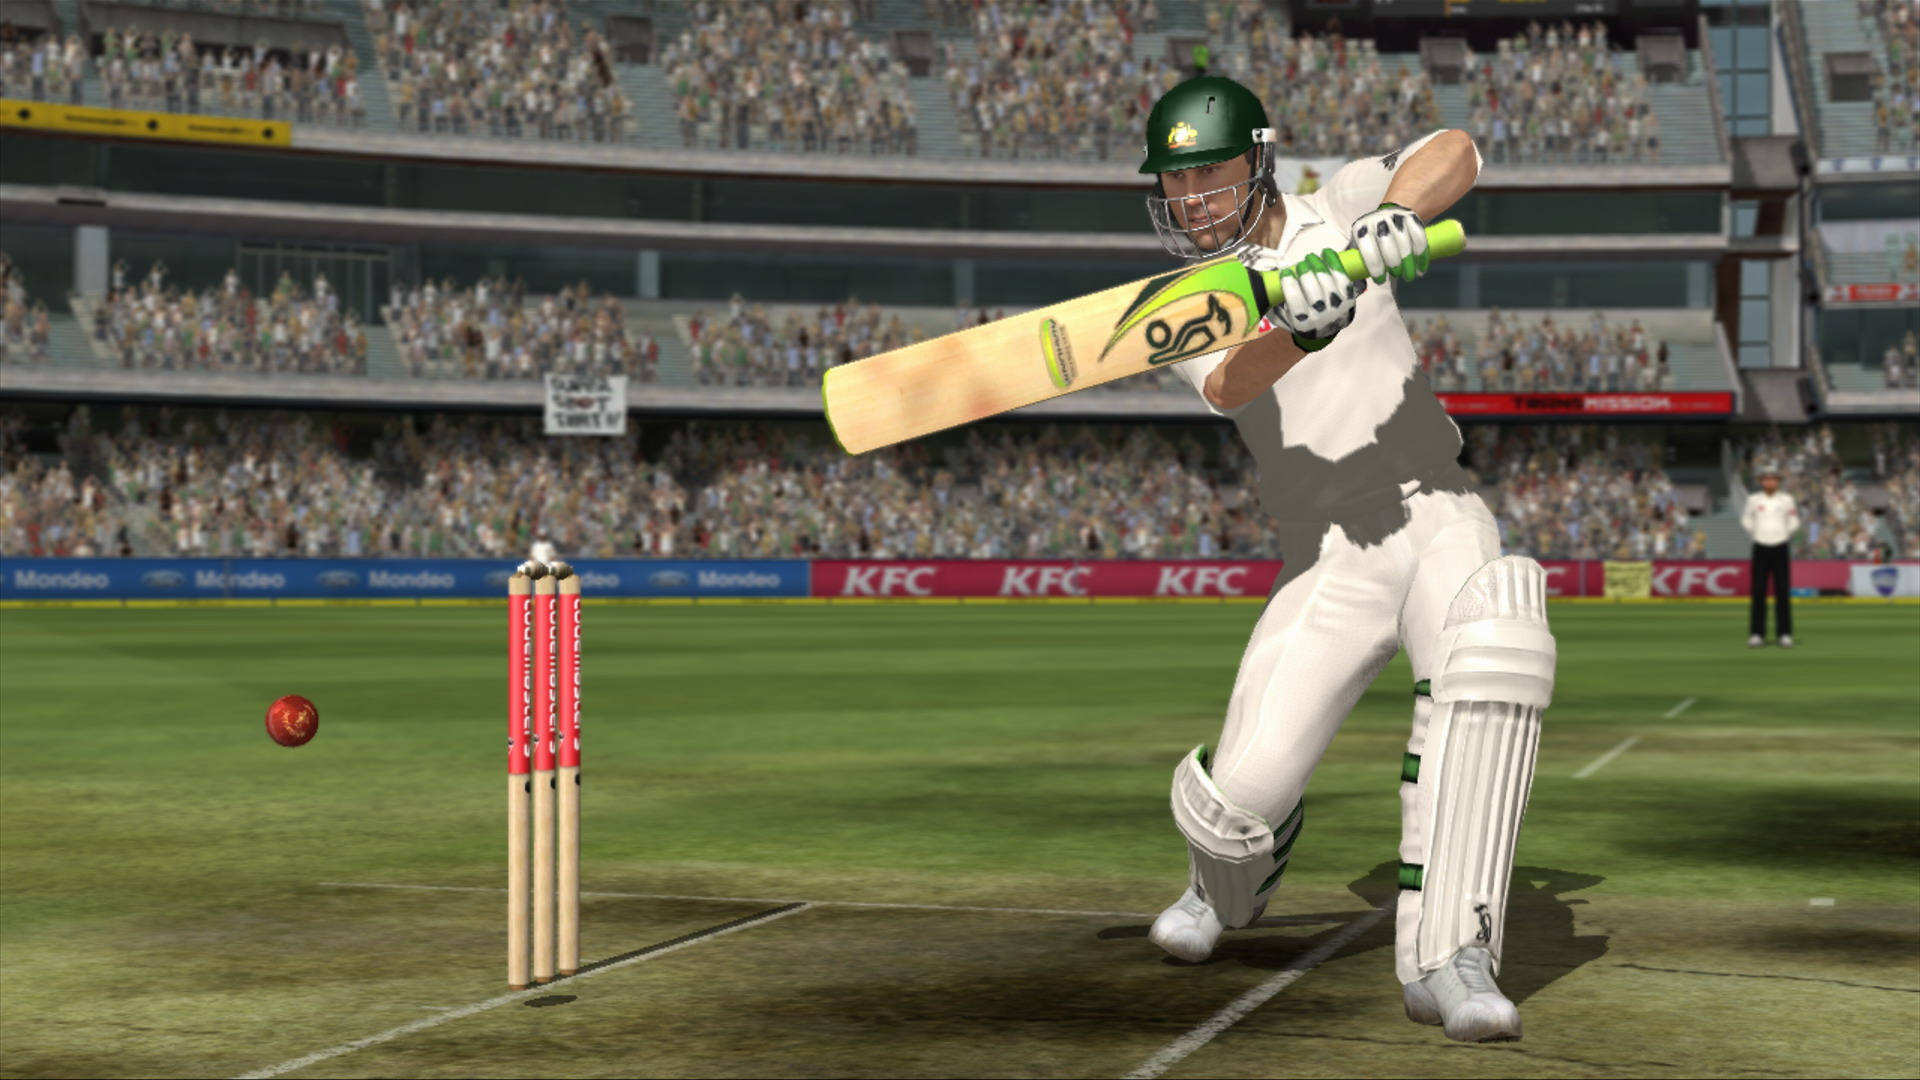 Ashes Cricket 2009 Download Free PC Game Full Version